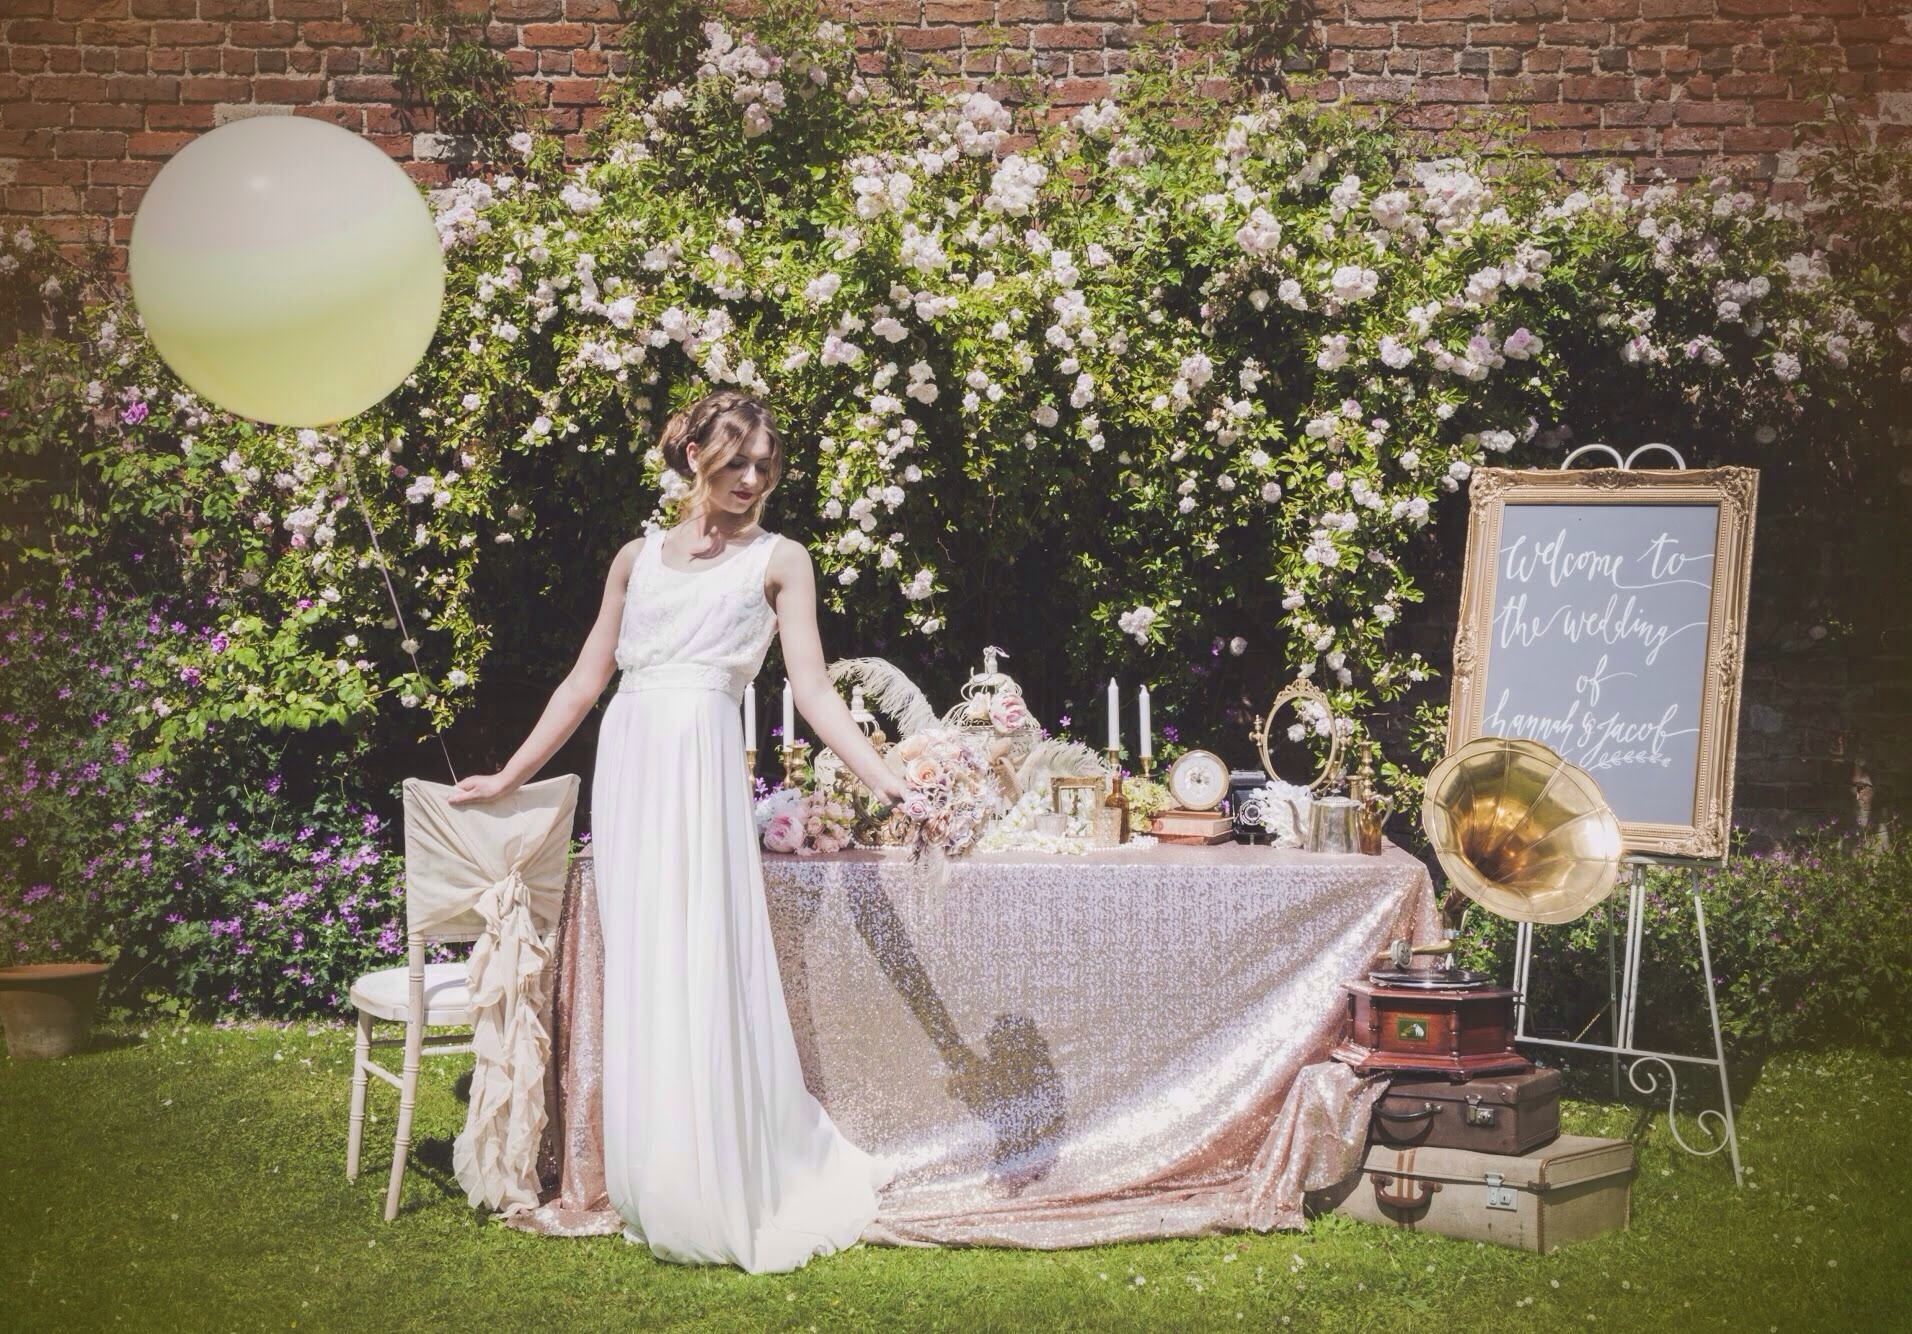 New wedding trends for 2017 - 2018